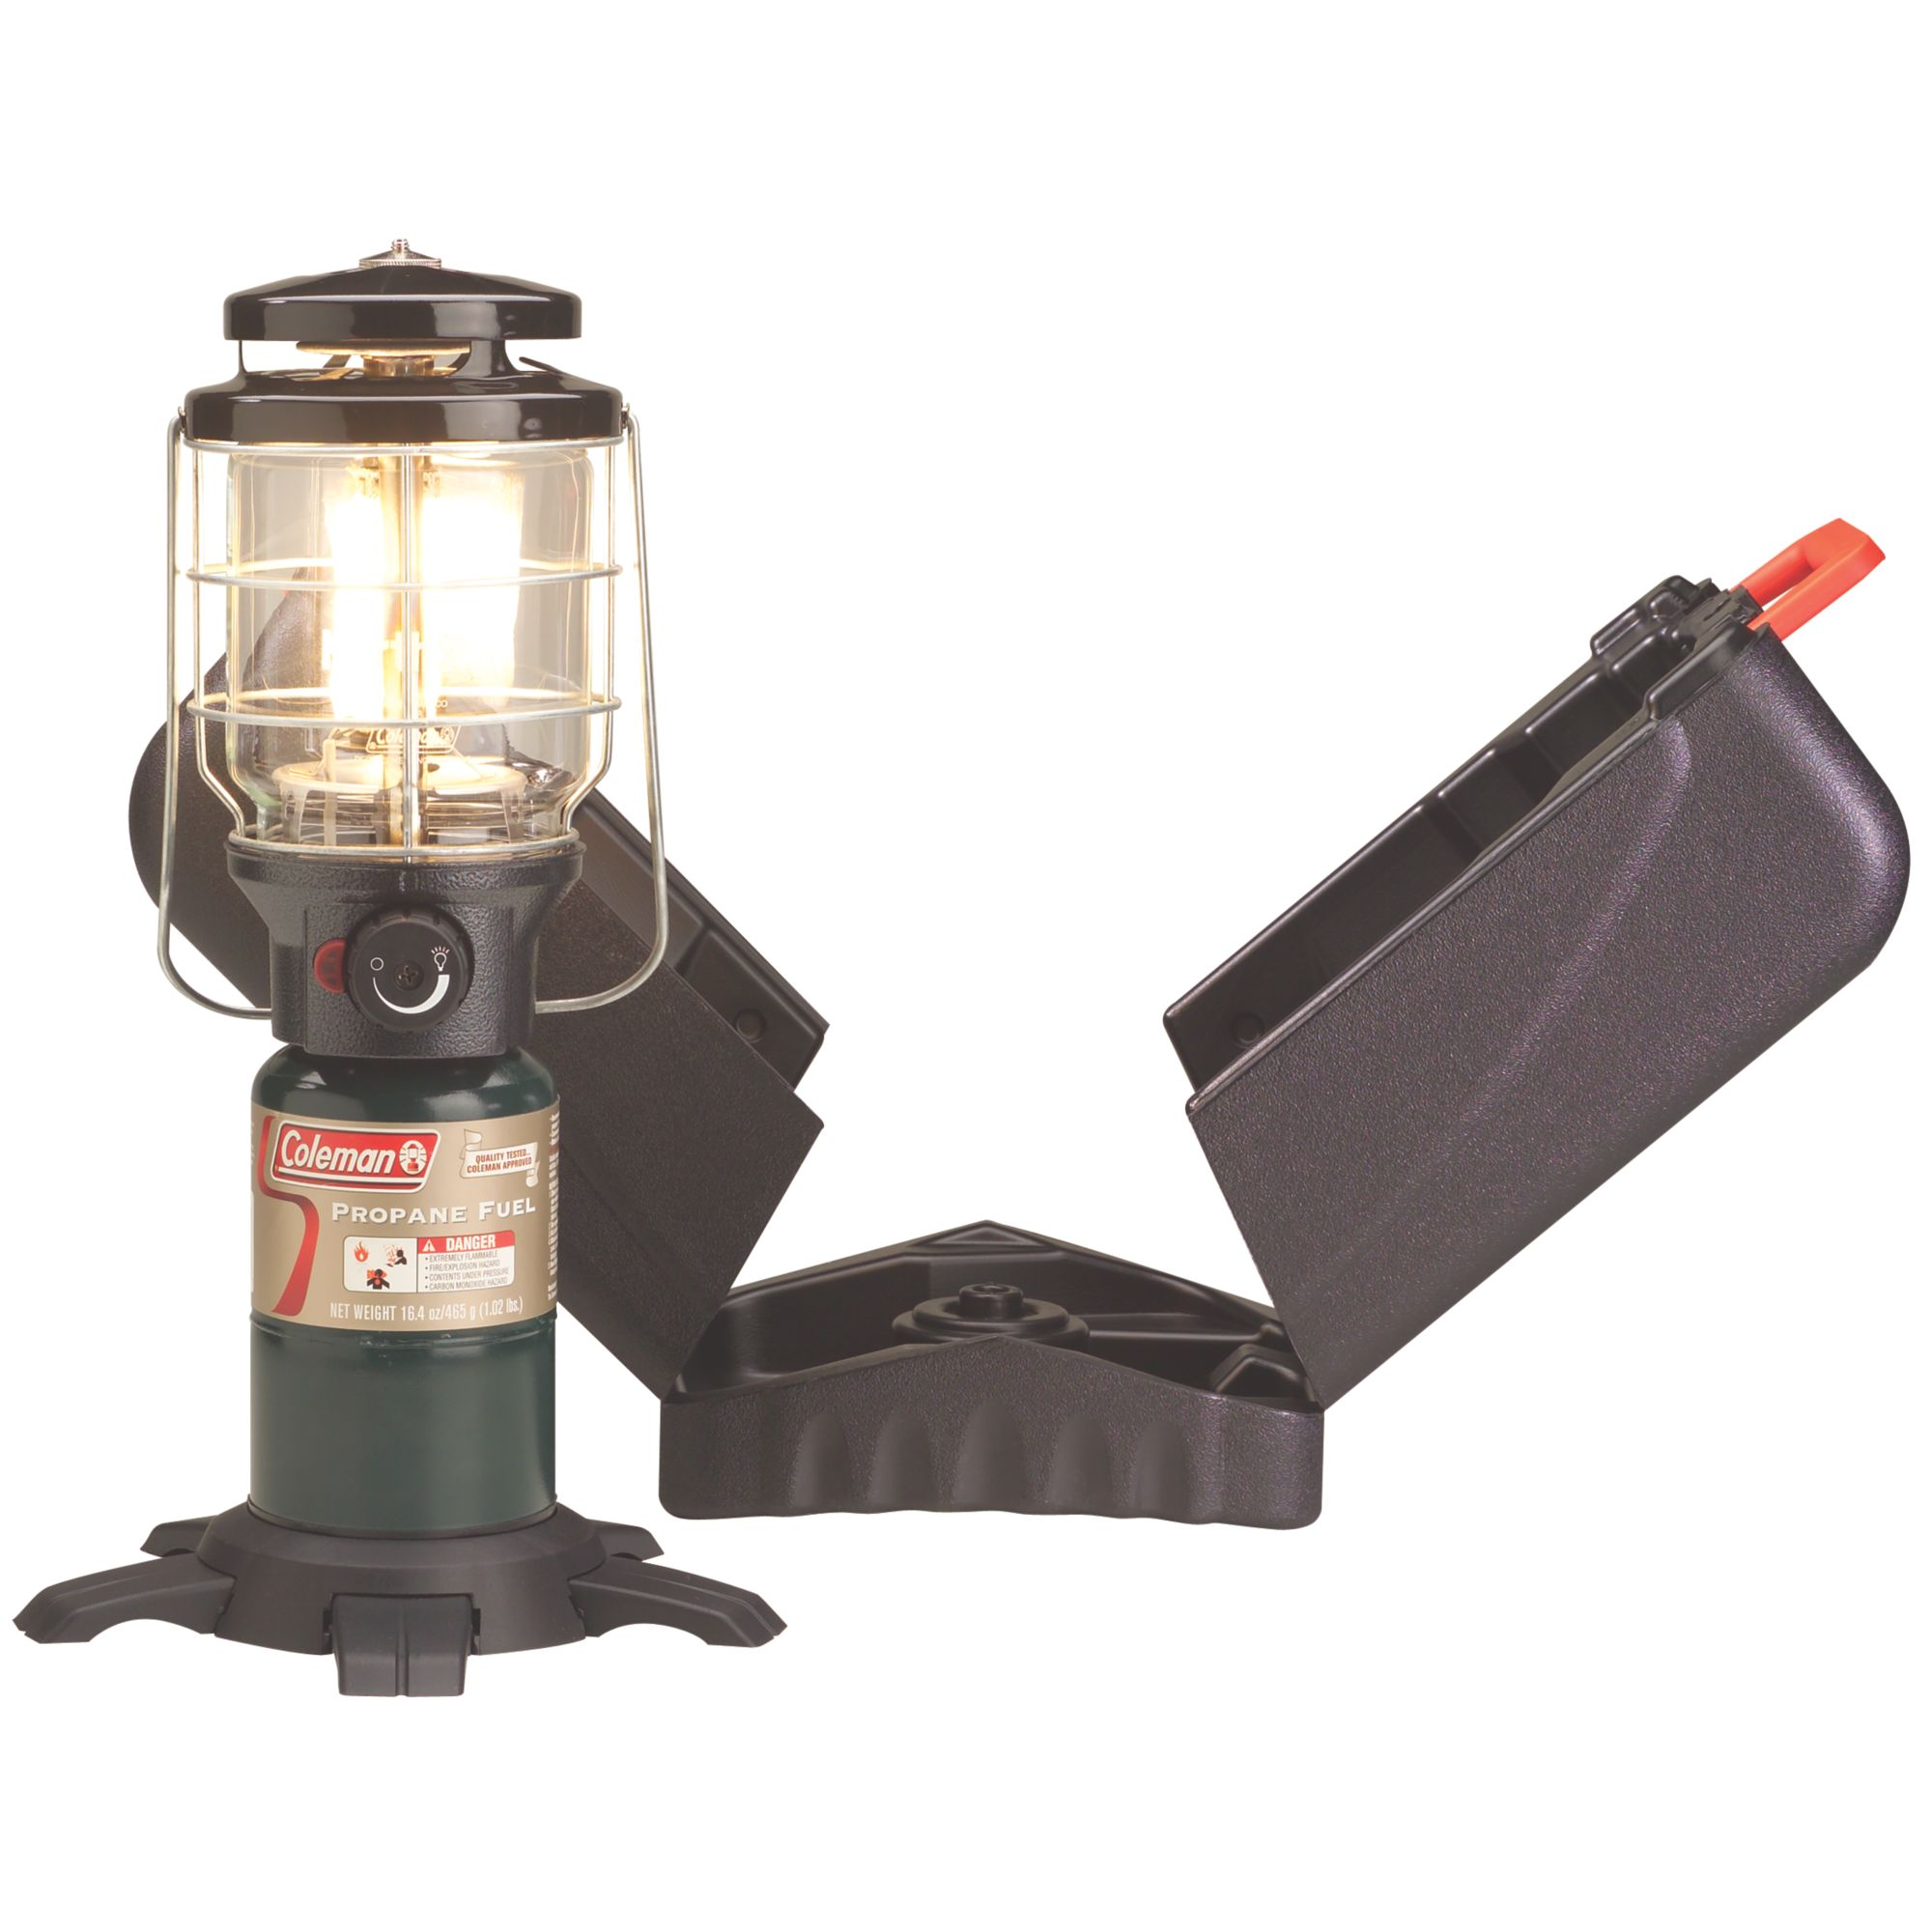 Northstar® PerfectFlow™ Instastart™ Propane Lantern with Hard Carry